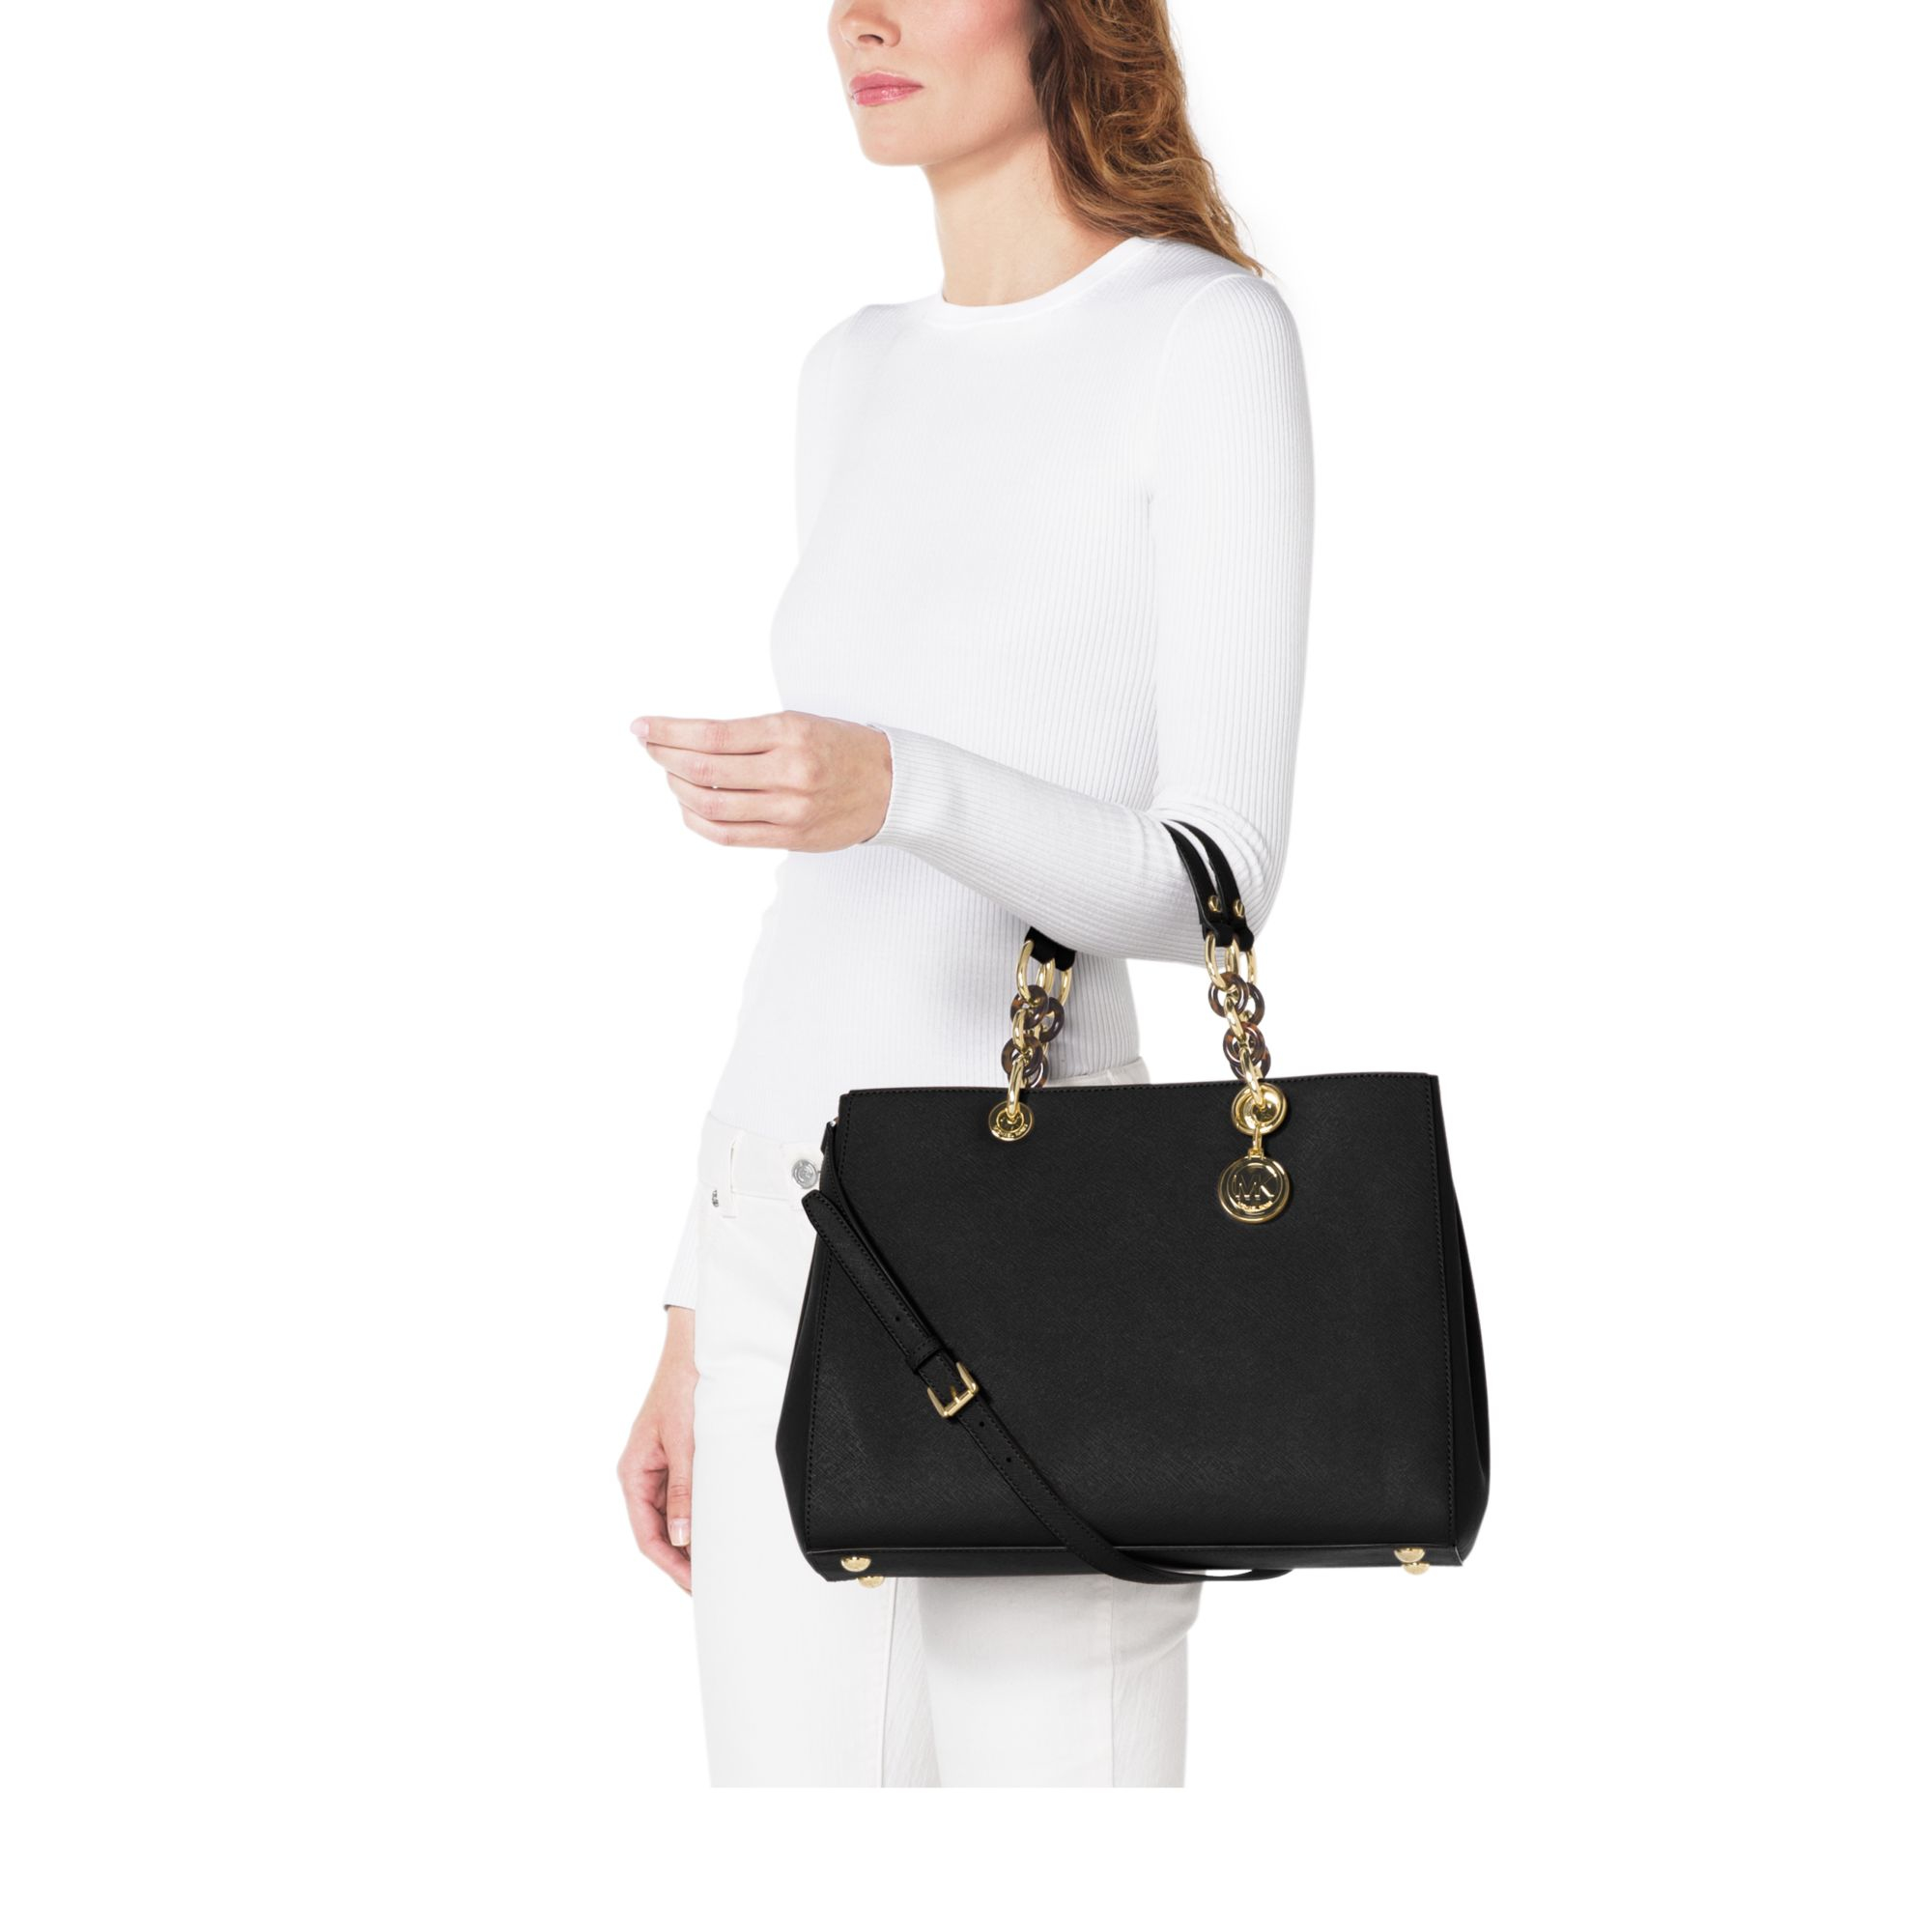 04806d27d45a Lyst - Michael Kors Cynthia Large Saffiano Leather Satchel in Black